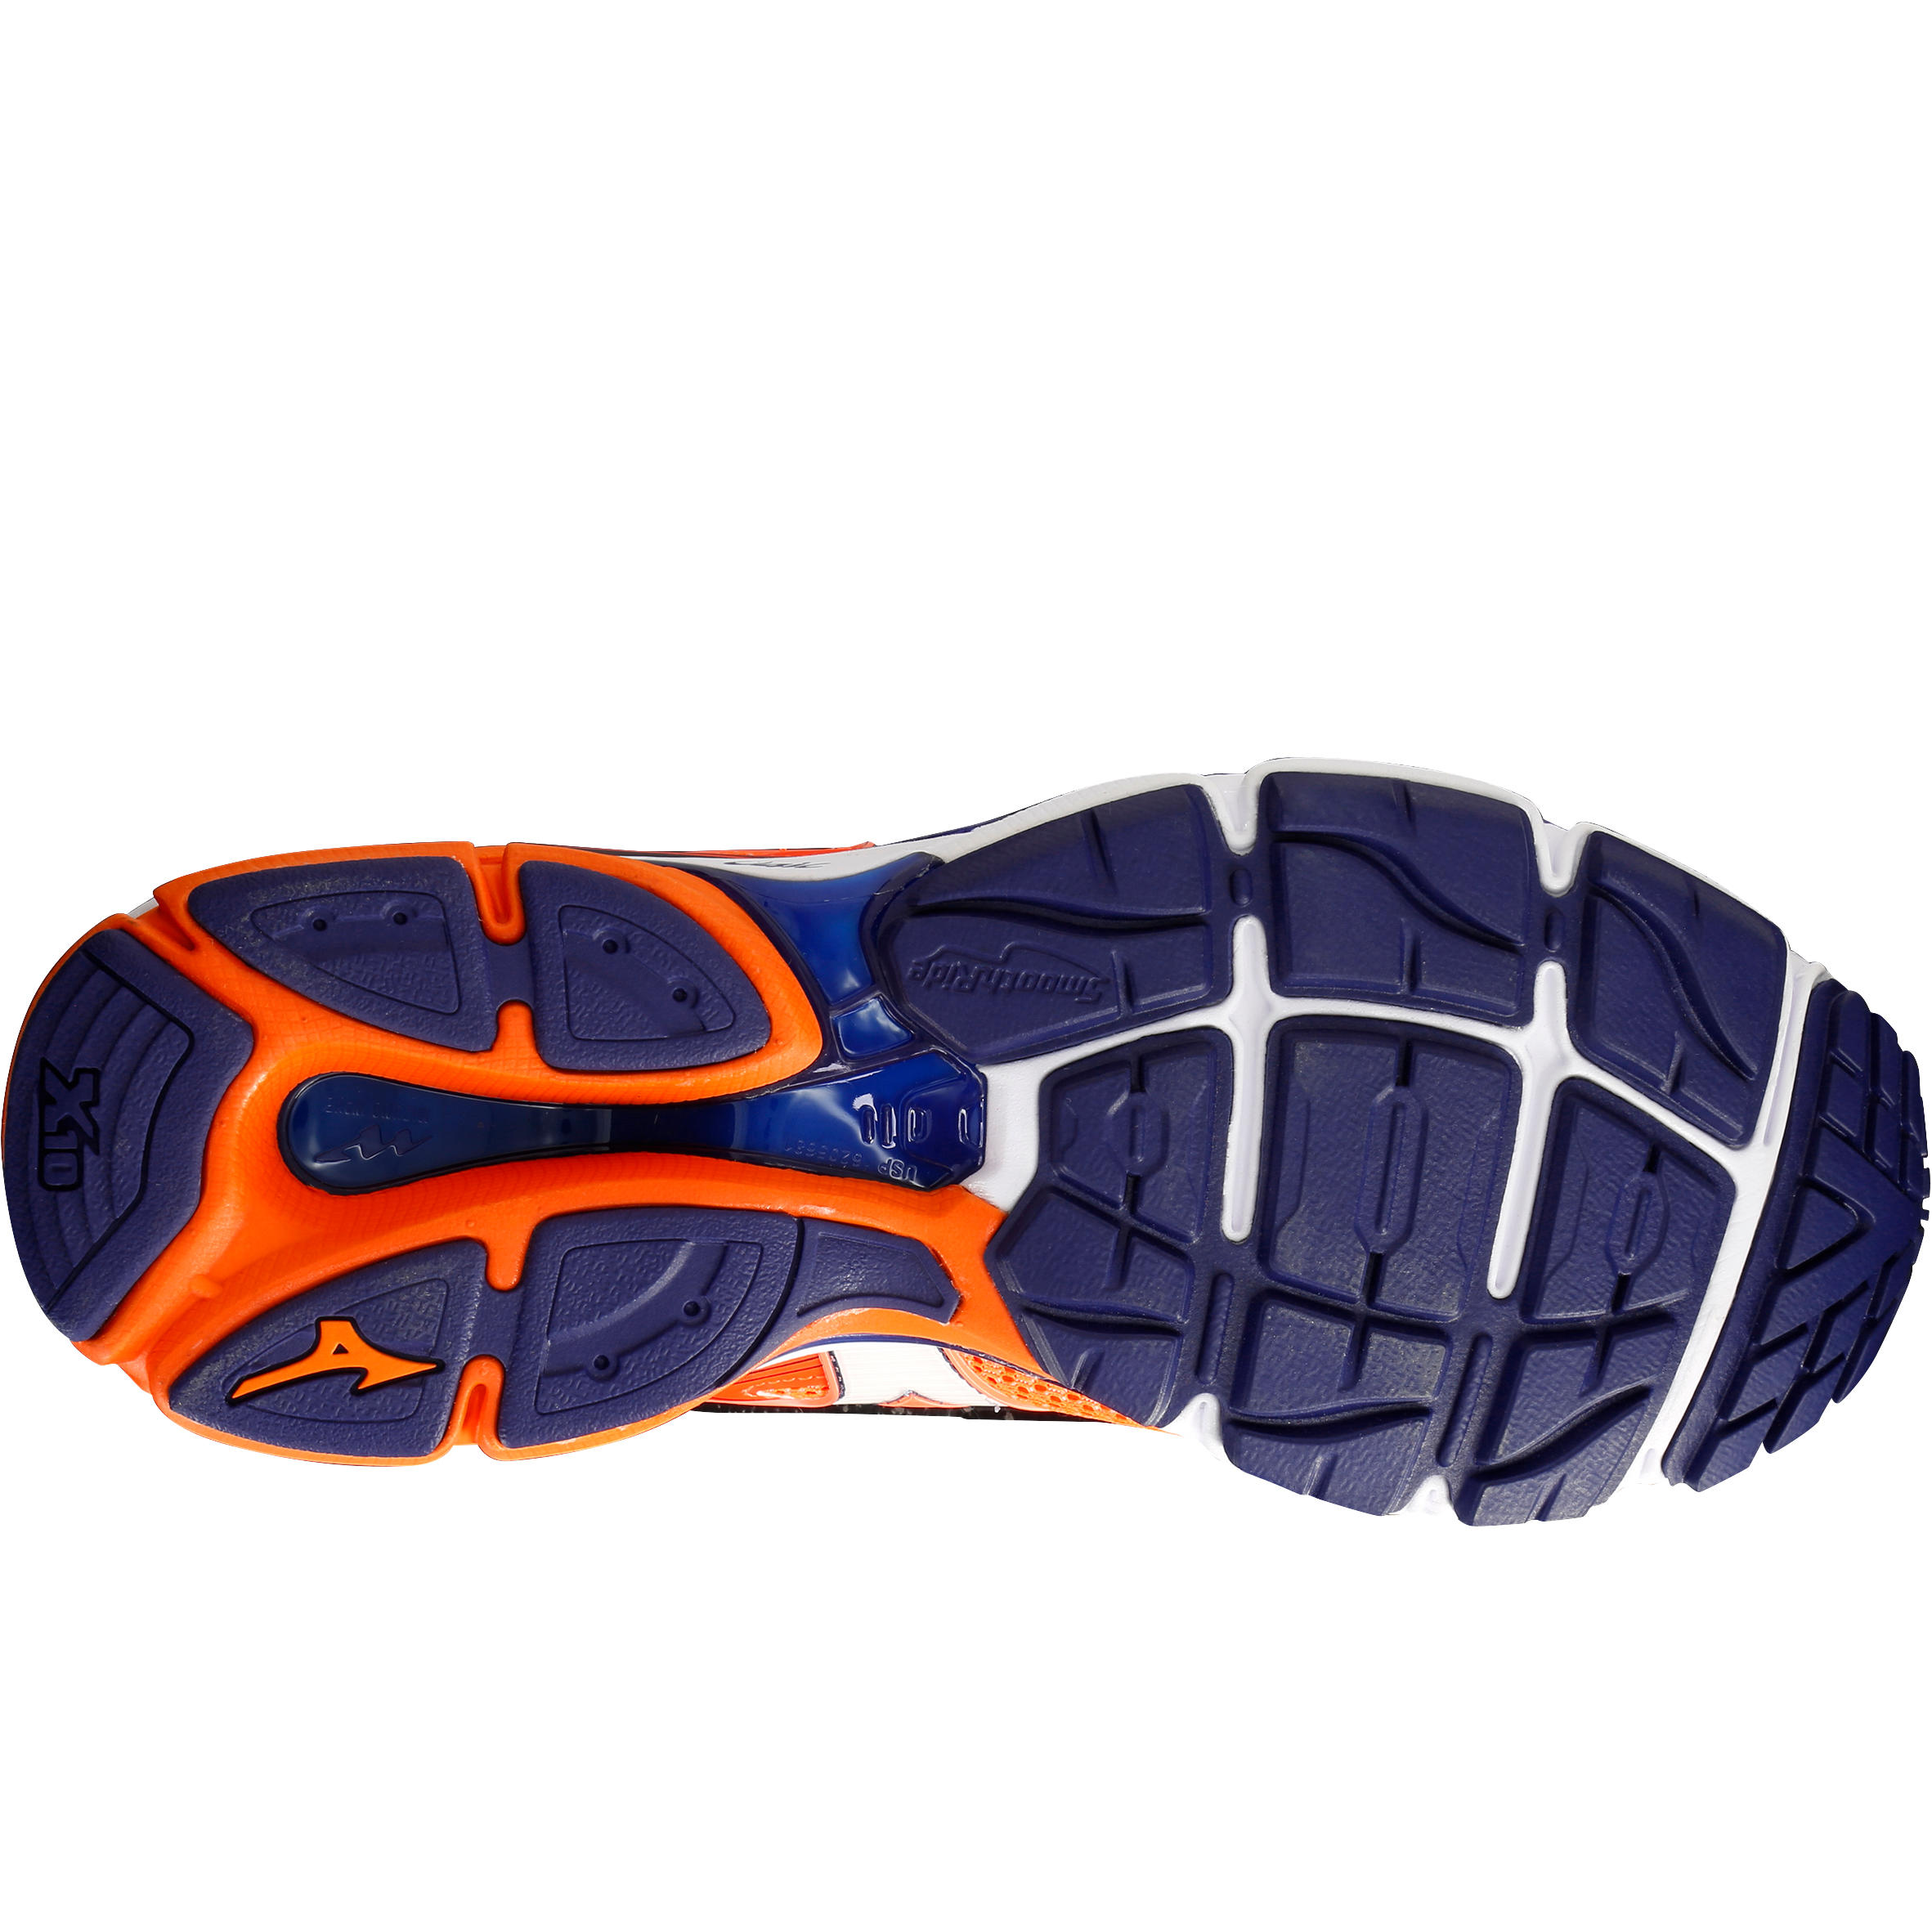 Homme Orange Ultima Chaussure Mizuno Running Wave Bleu 8 f6gv7byY